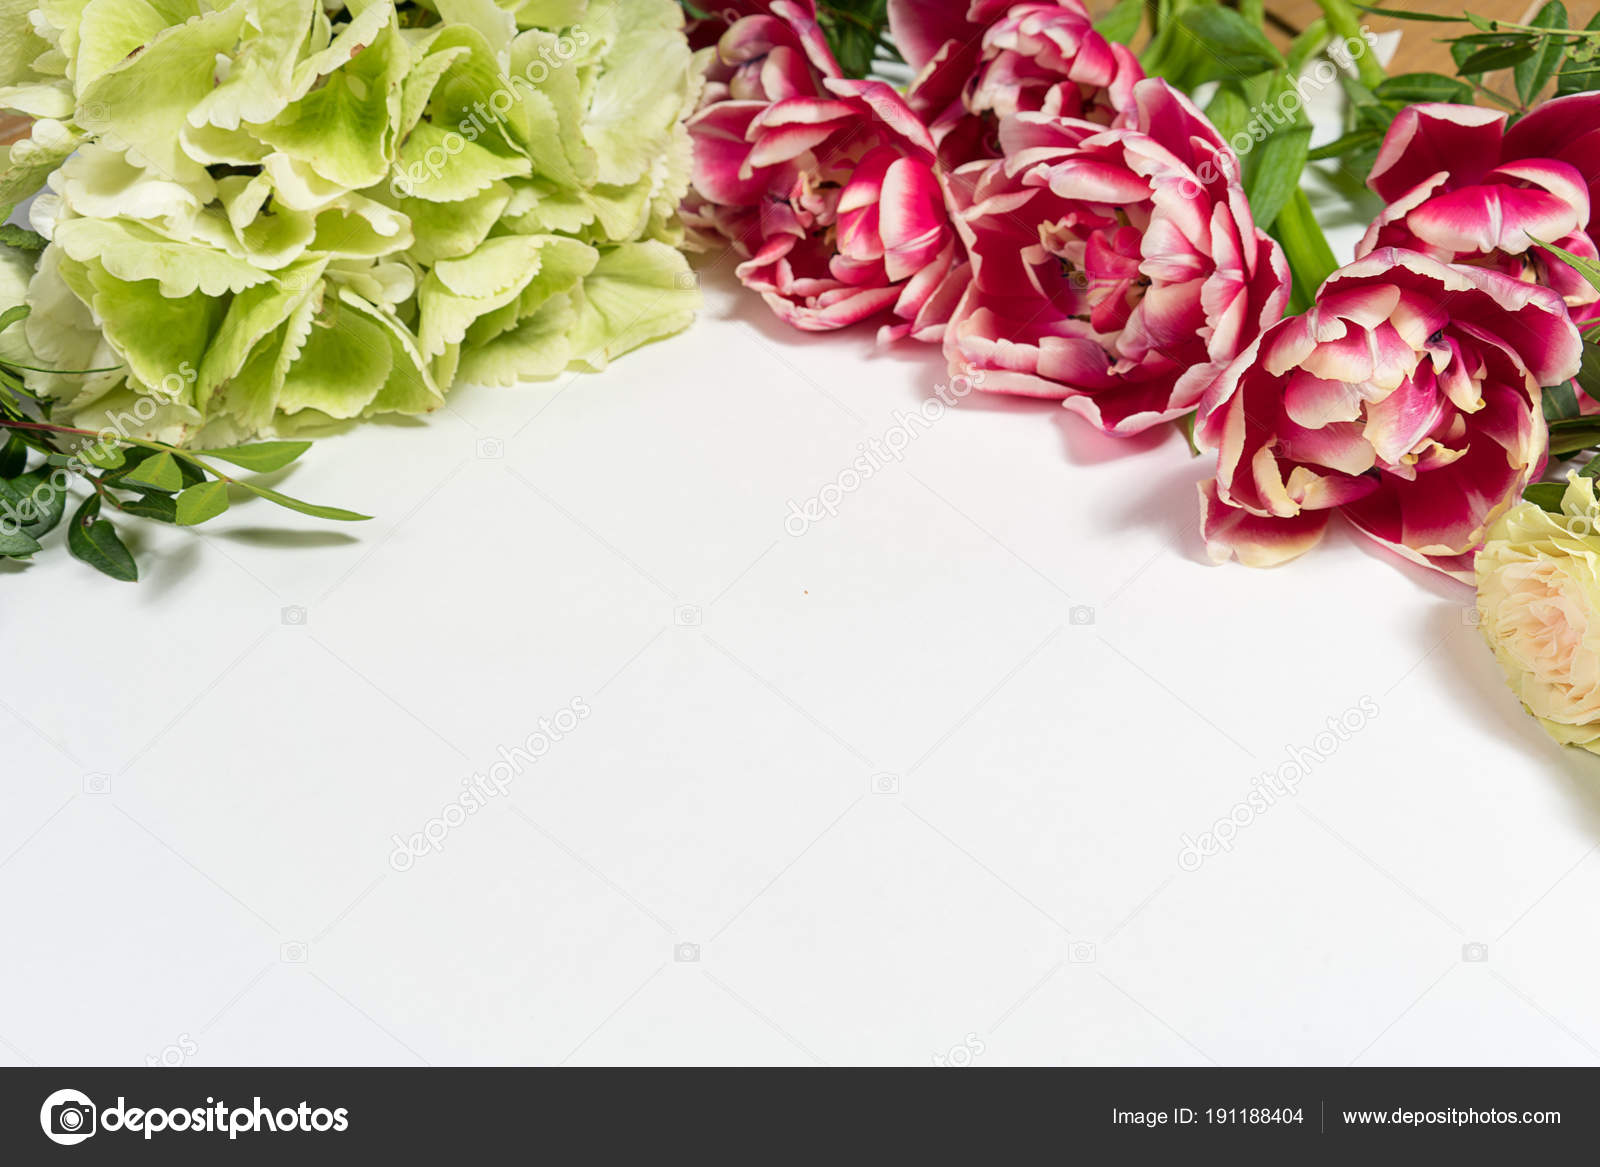 Spring Flowers Pink Flowers White Wooden Background Flat Lay Top